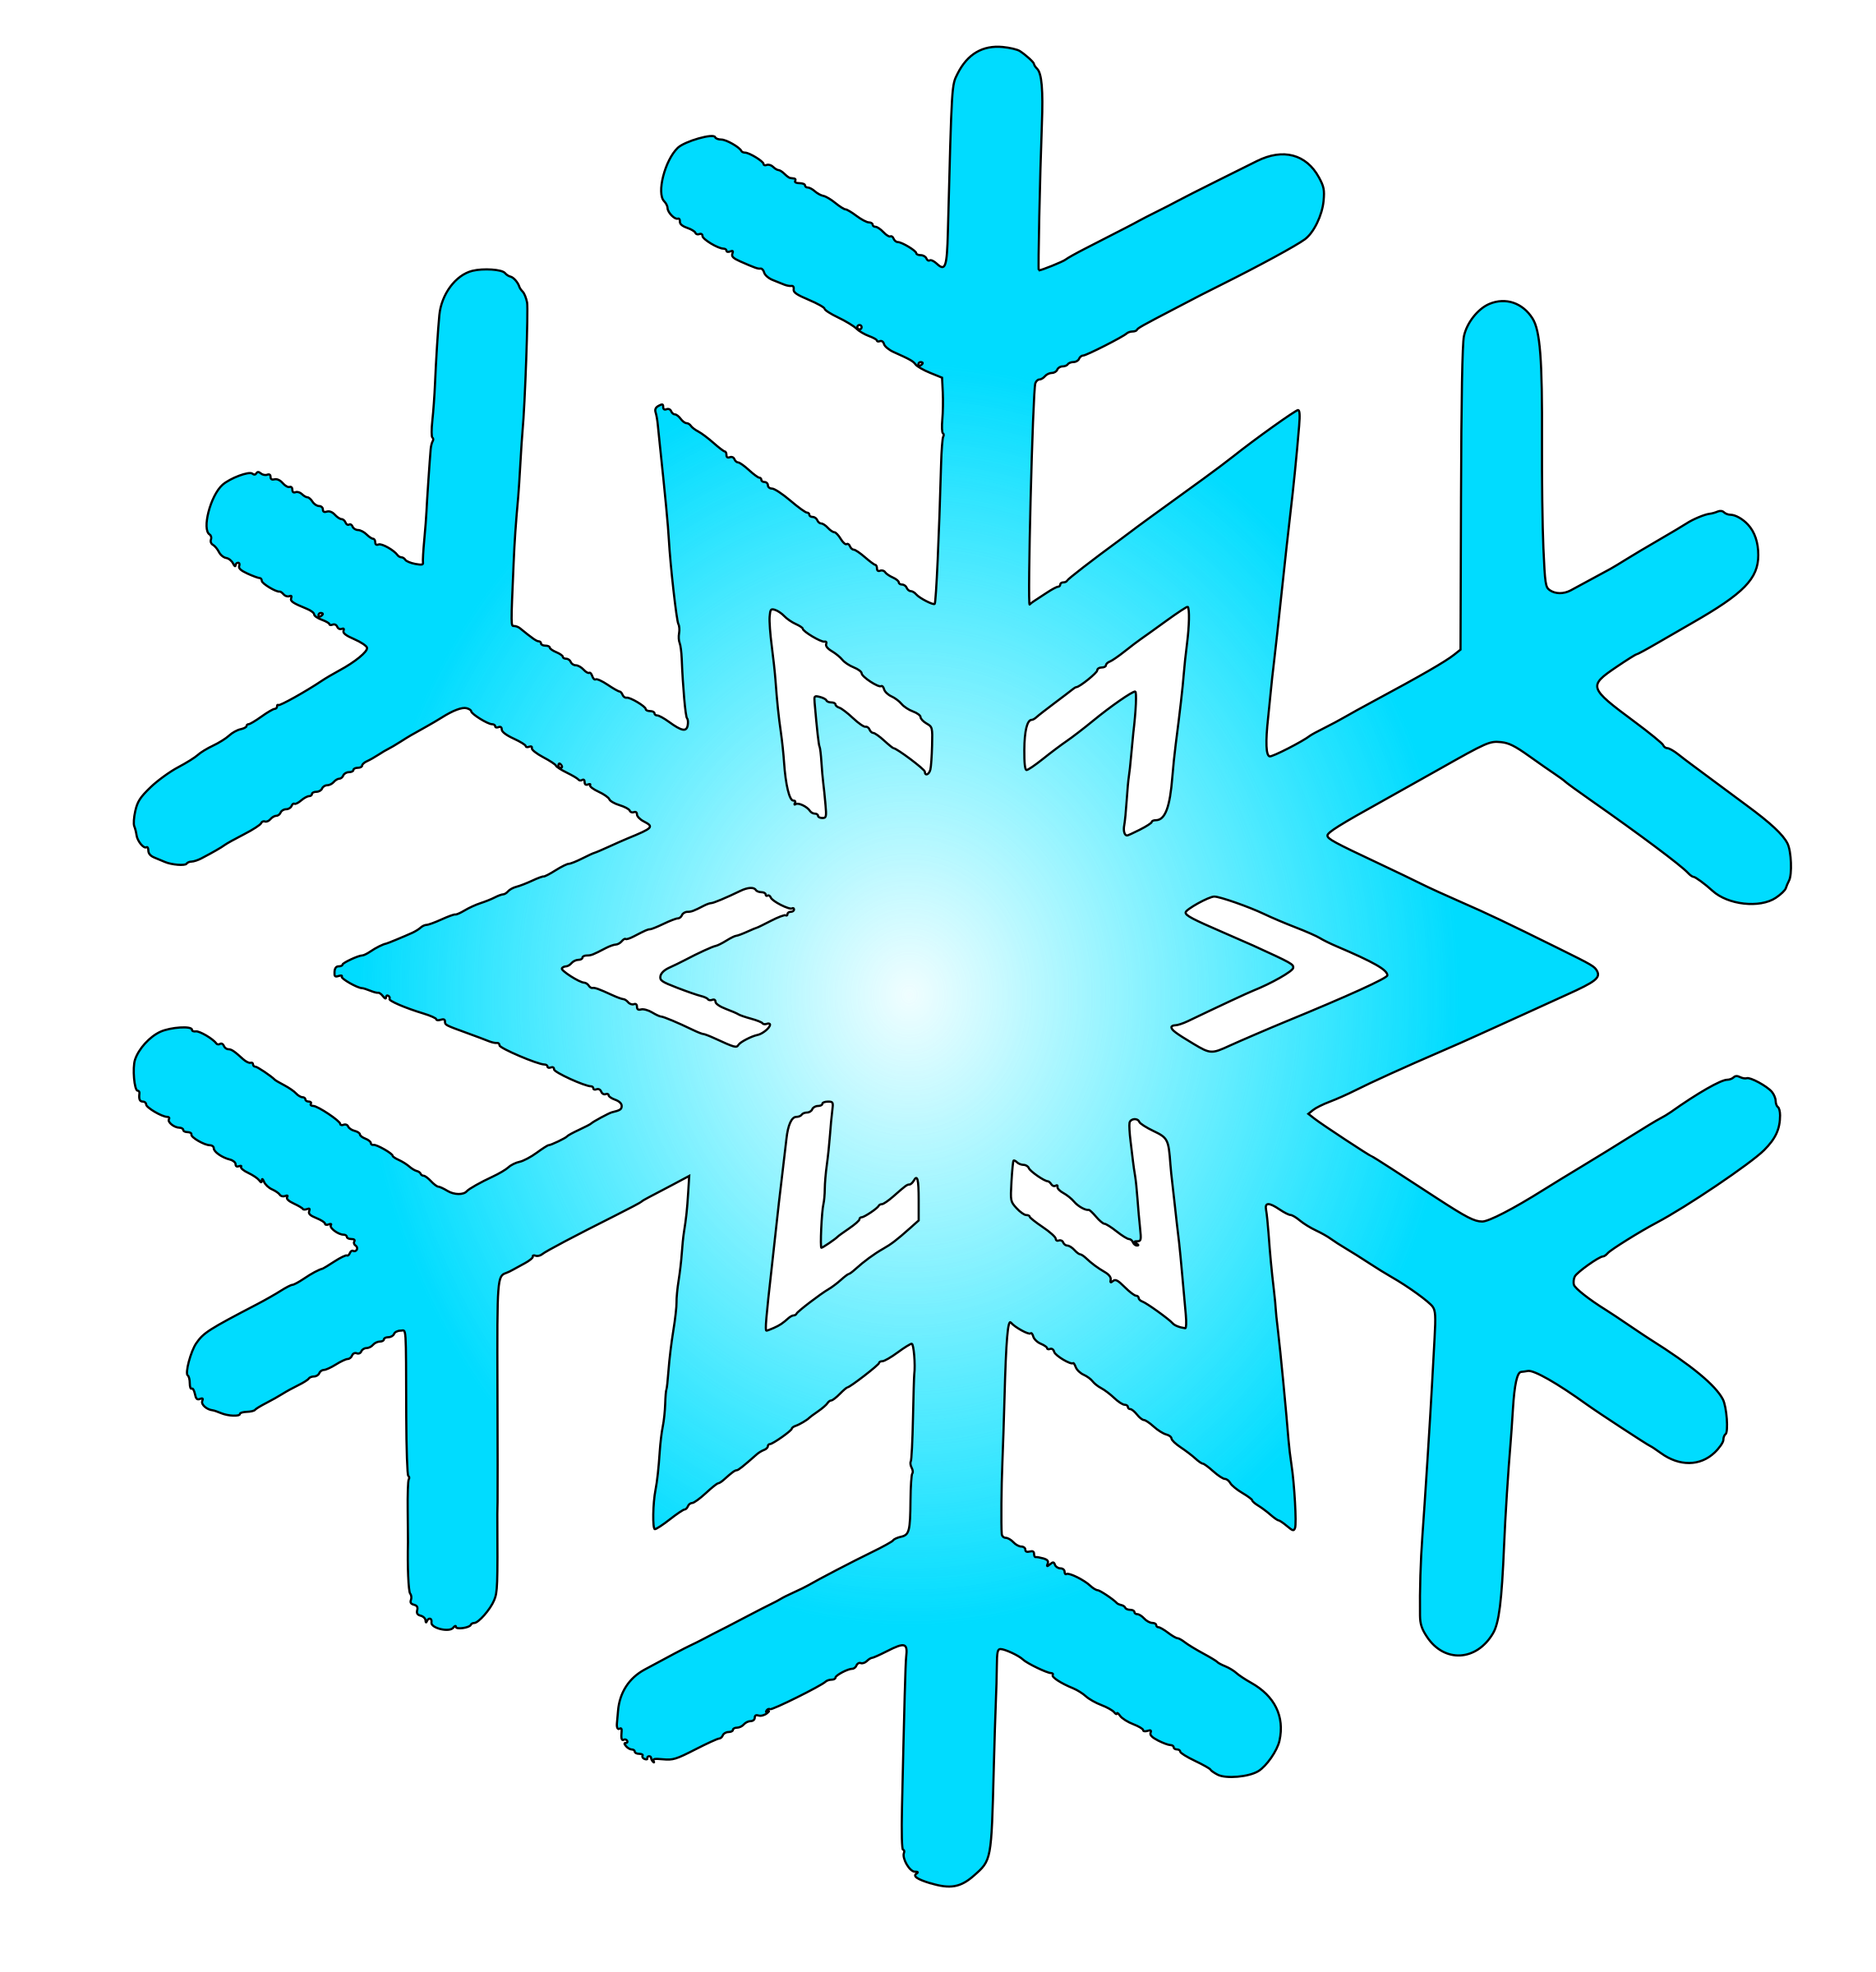 vector download Flake clipart. Snow big image png